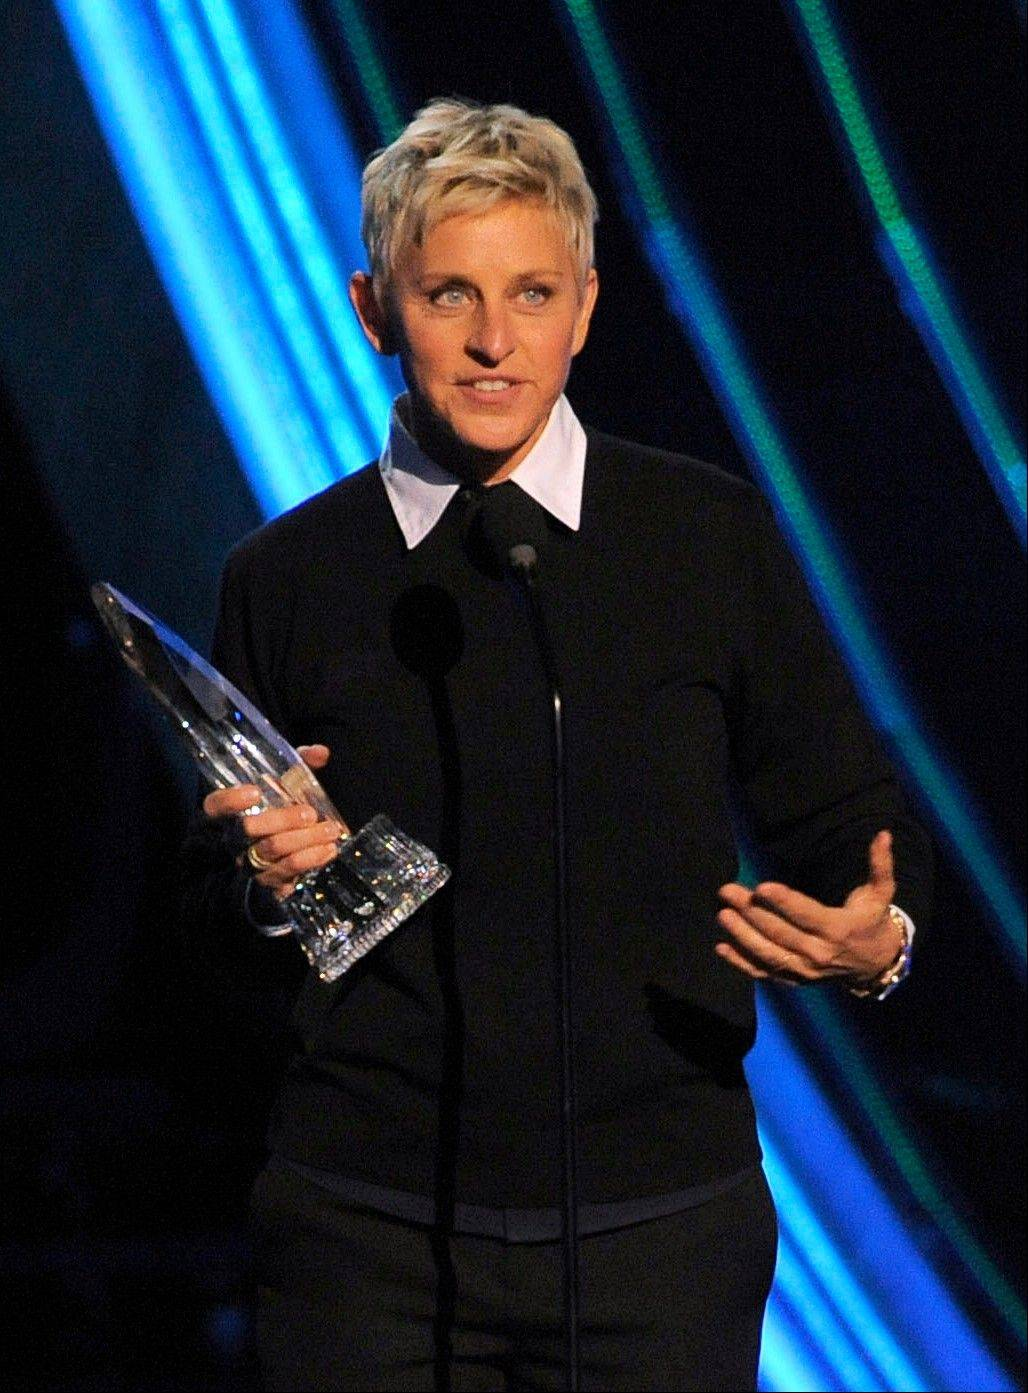 Ellen Degeneres accepts the award for favorite daytime TV host at the People�s Choice Awards at the Nokia Theatre on Wednesday Jan. 9, 2013, in Los Angeles.